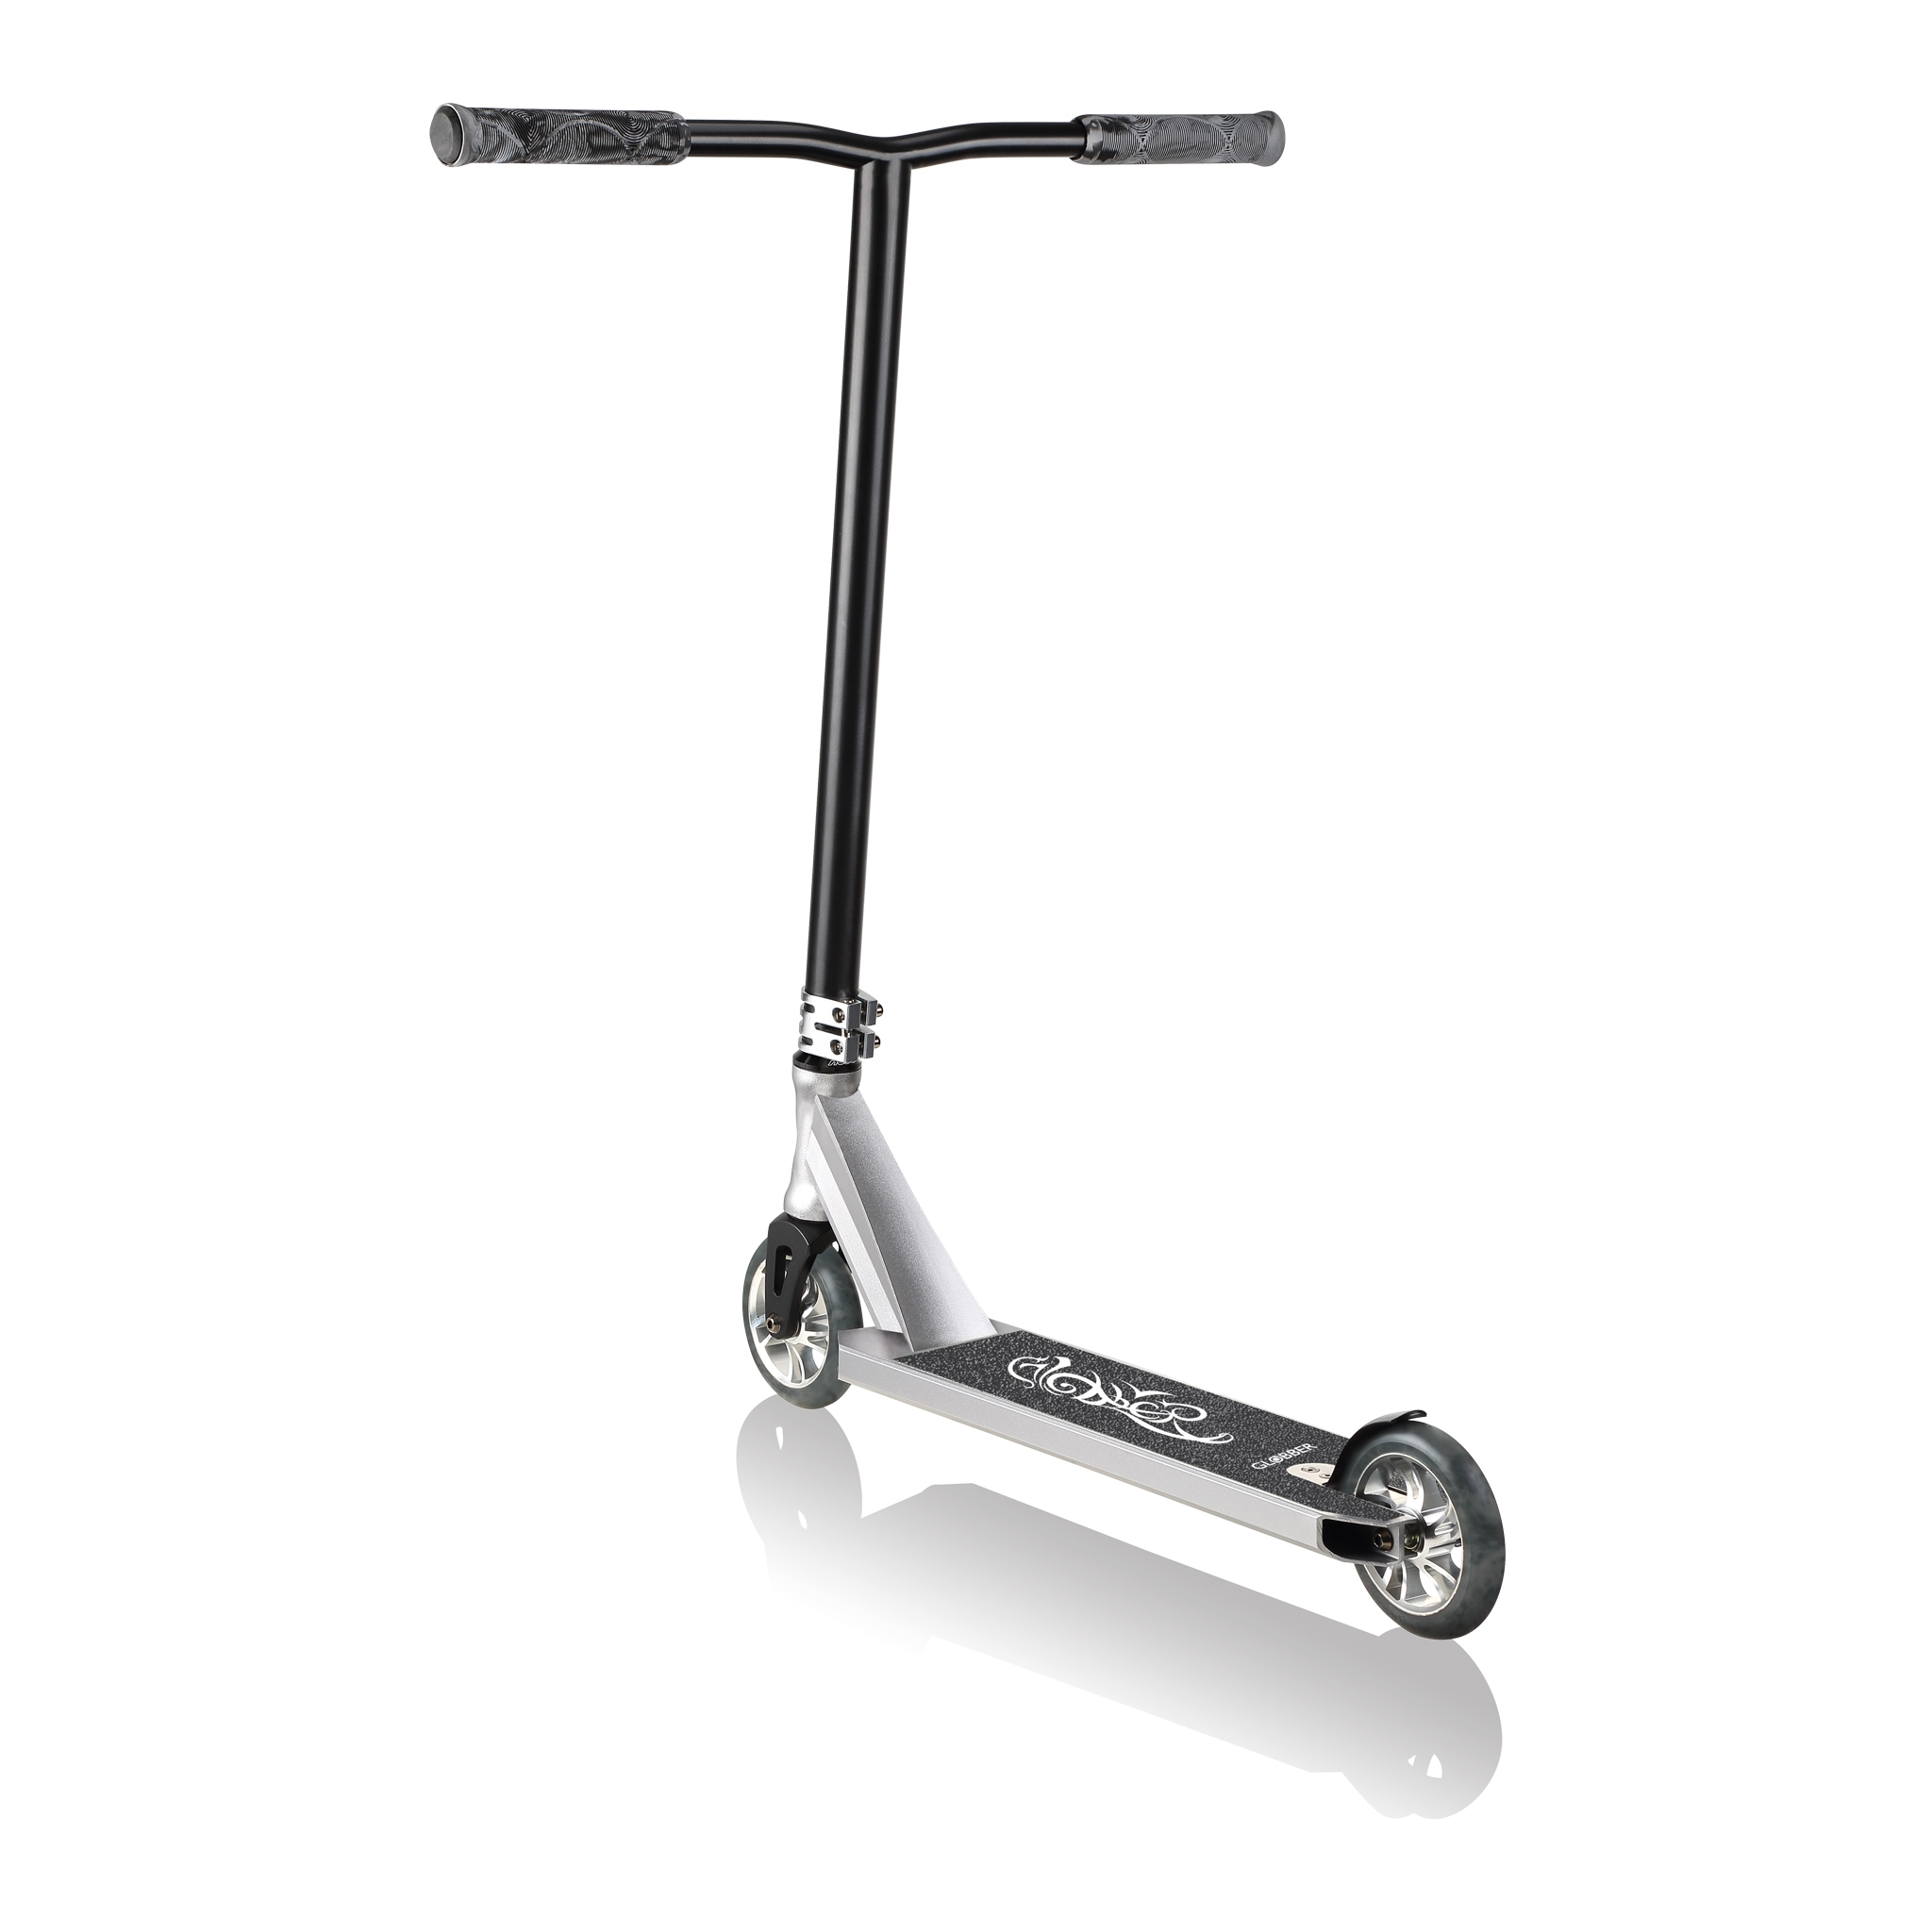 Globber-GS-900-best-stunt-scooter-with-NECO-headset-and-6063-aluminium-anodized-CNC-double-clamp-grey